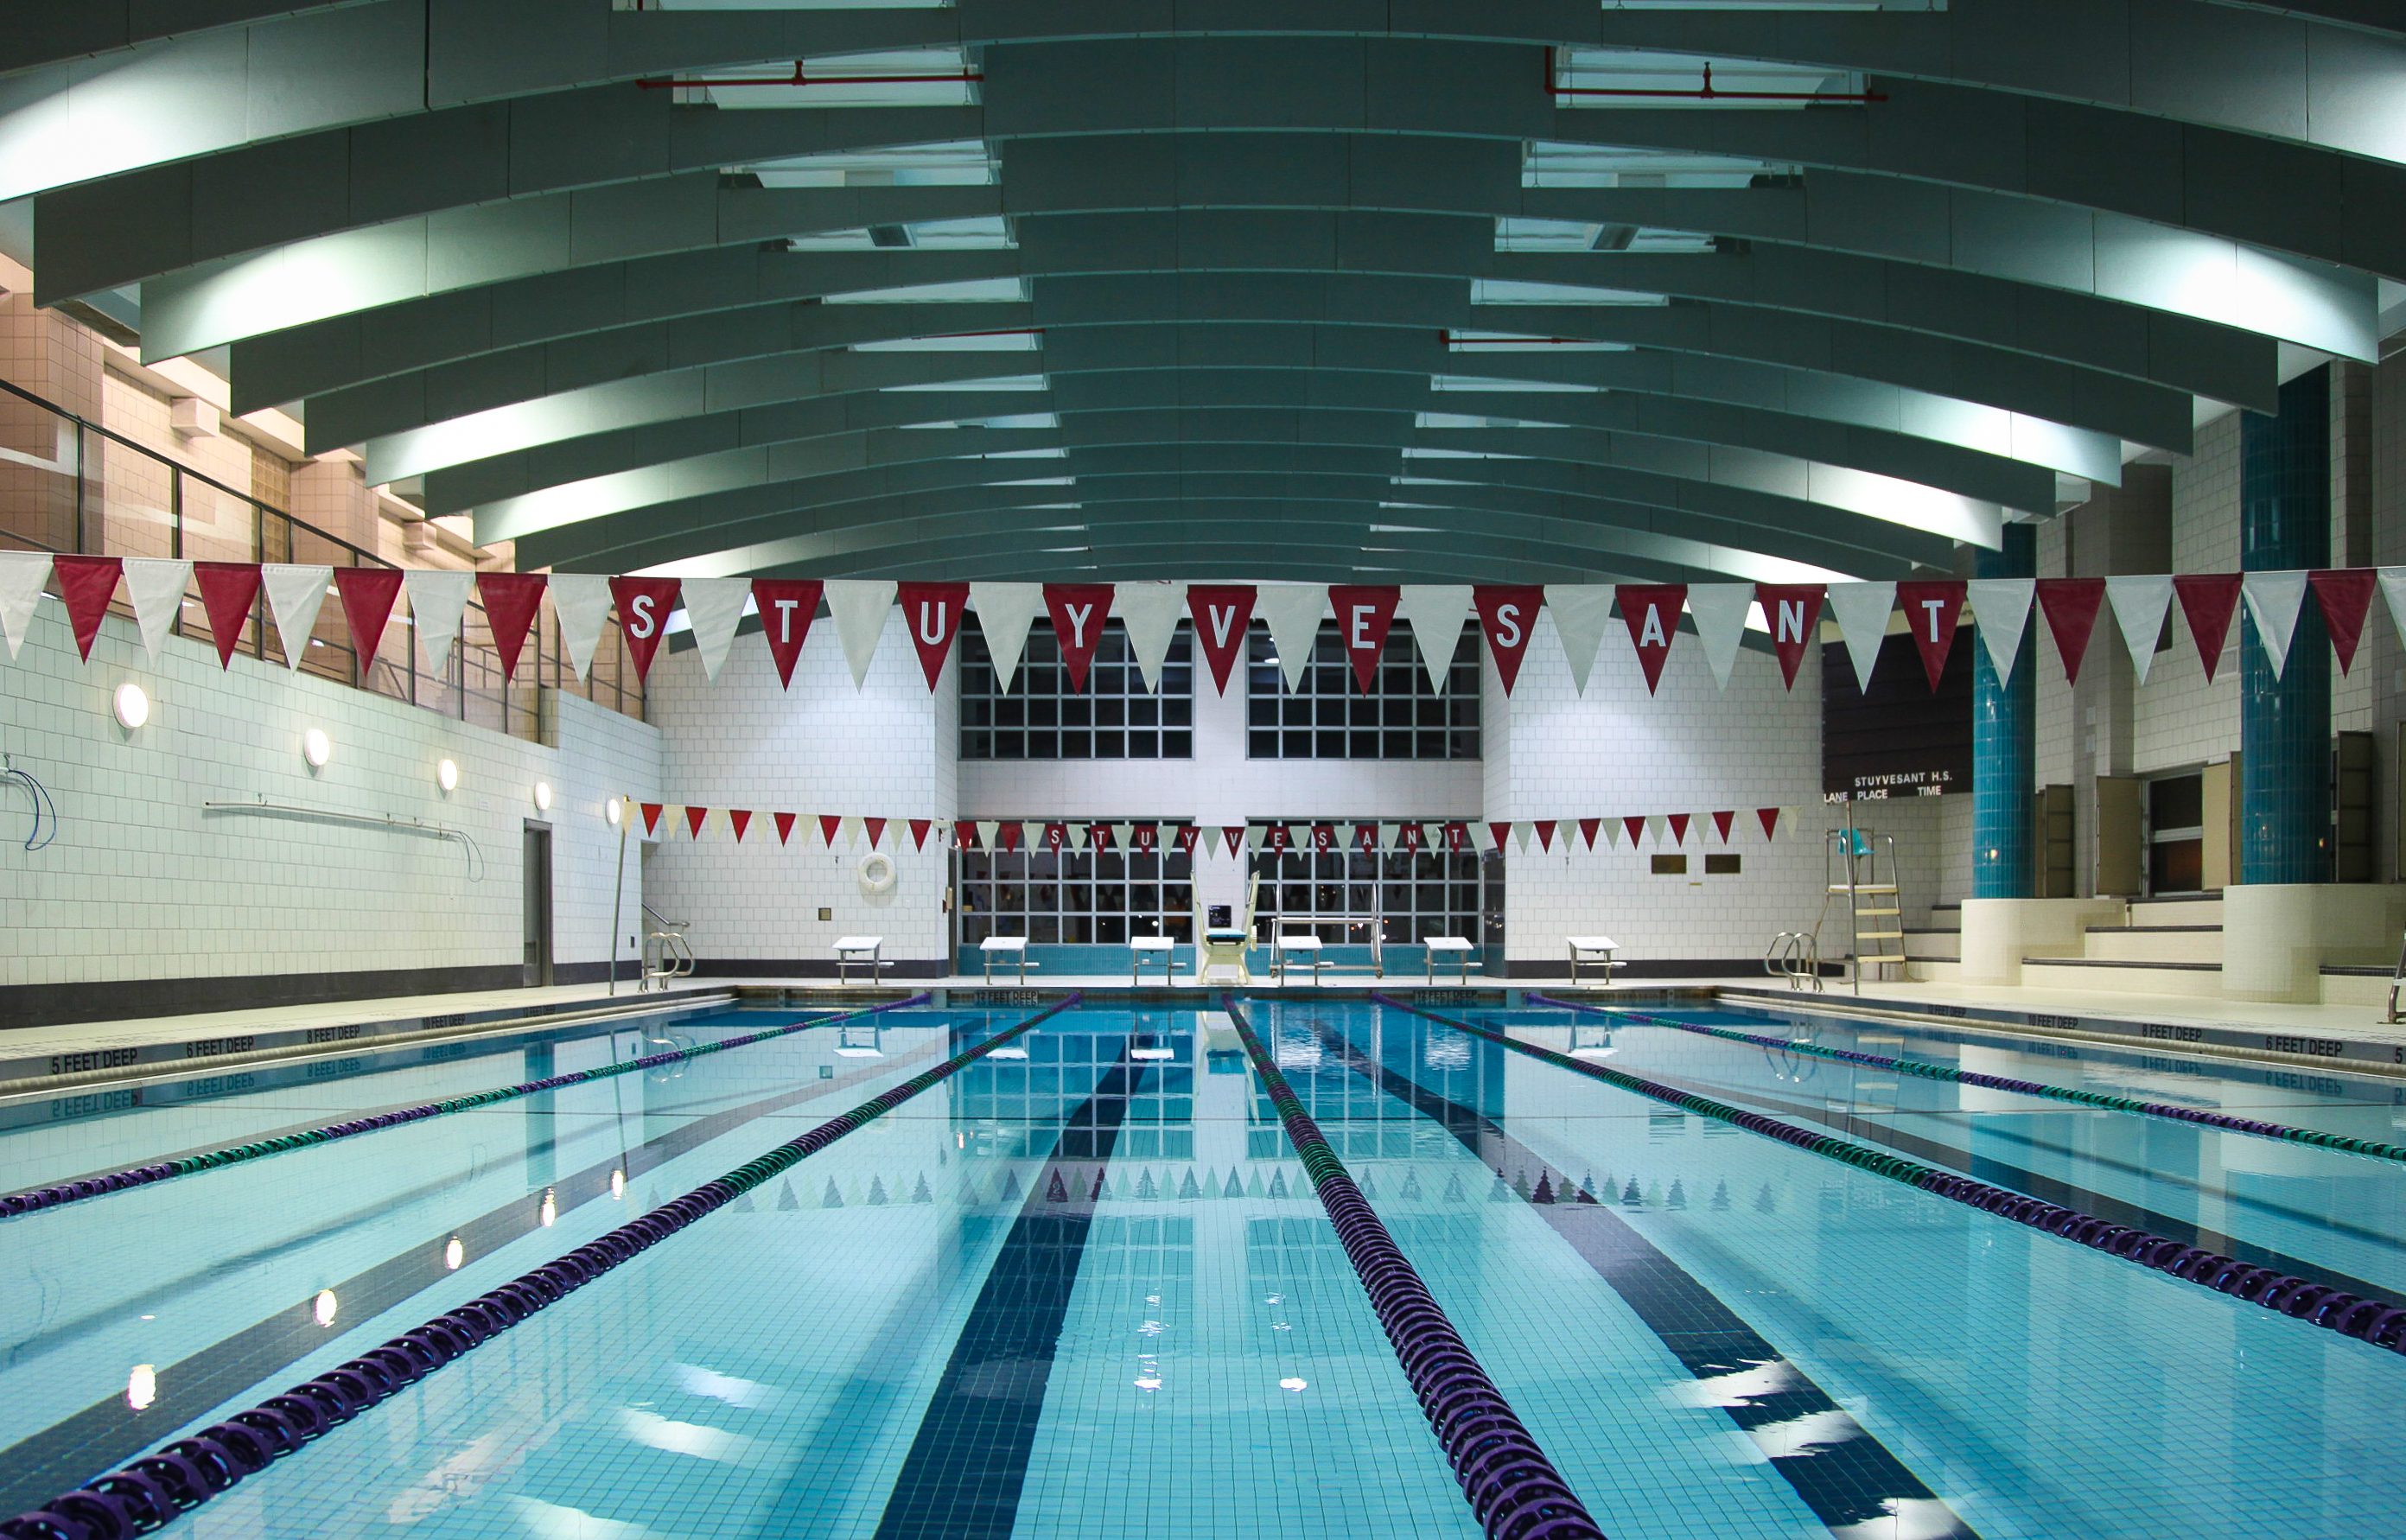 Bpca announces reduced pricing for community center at stuyvesant high school battery park for Stuyvesant high school swimming pool